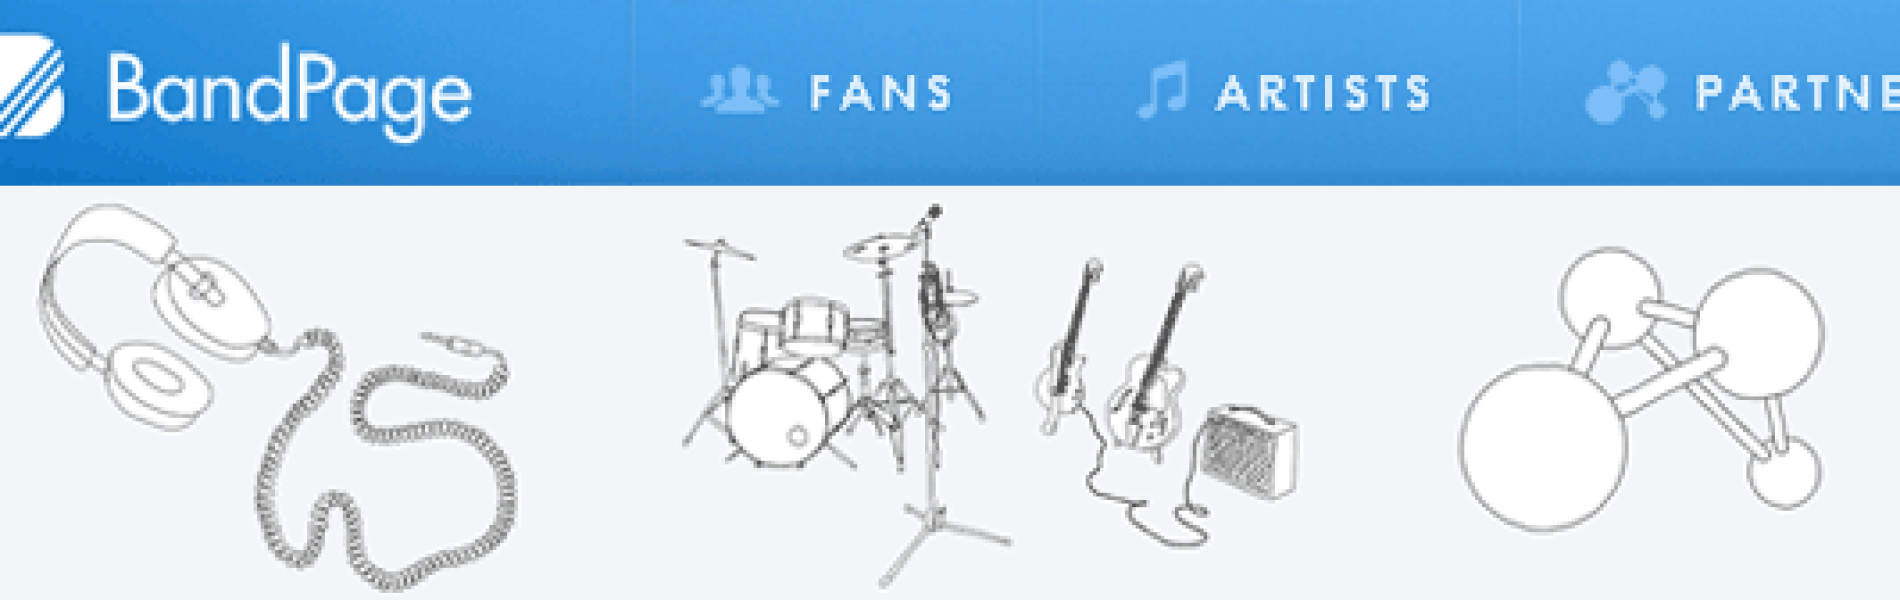 BandPage: A Platform for Poor Musicians